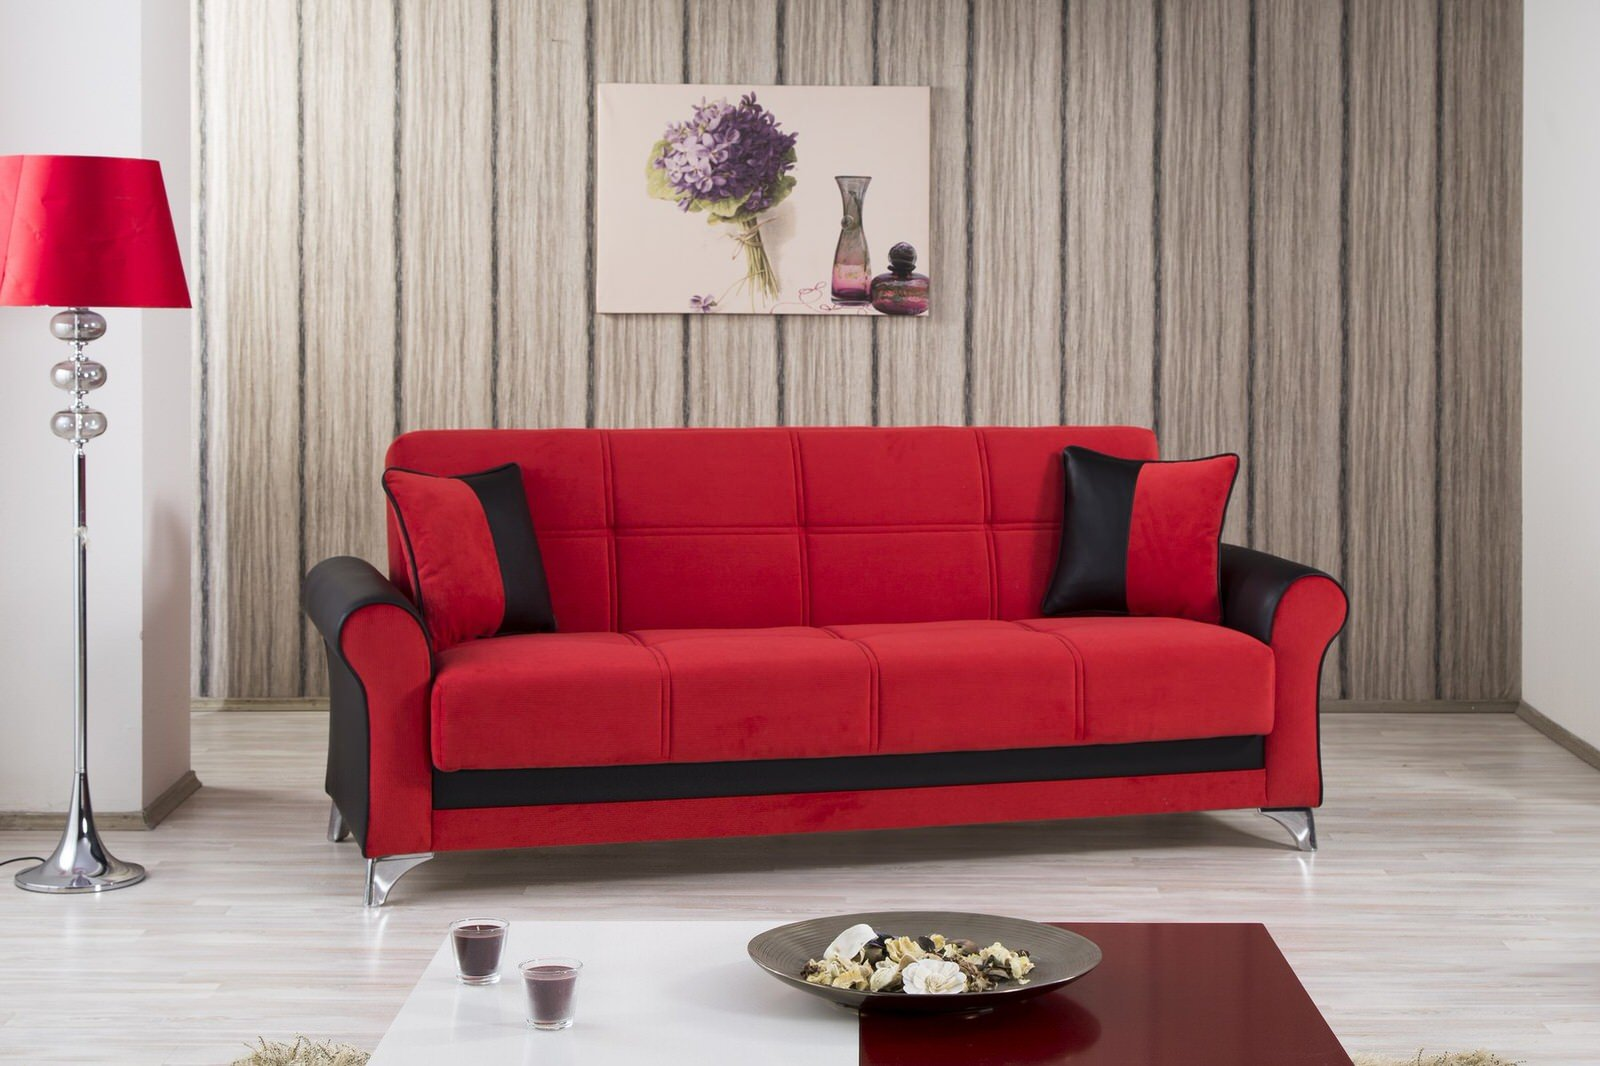 Urban style tuva red convertible sofa bed by casamode for Sofa bed name